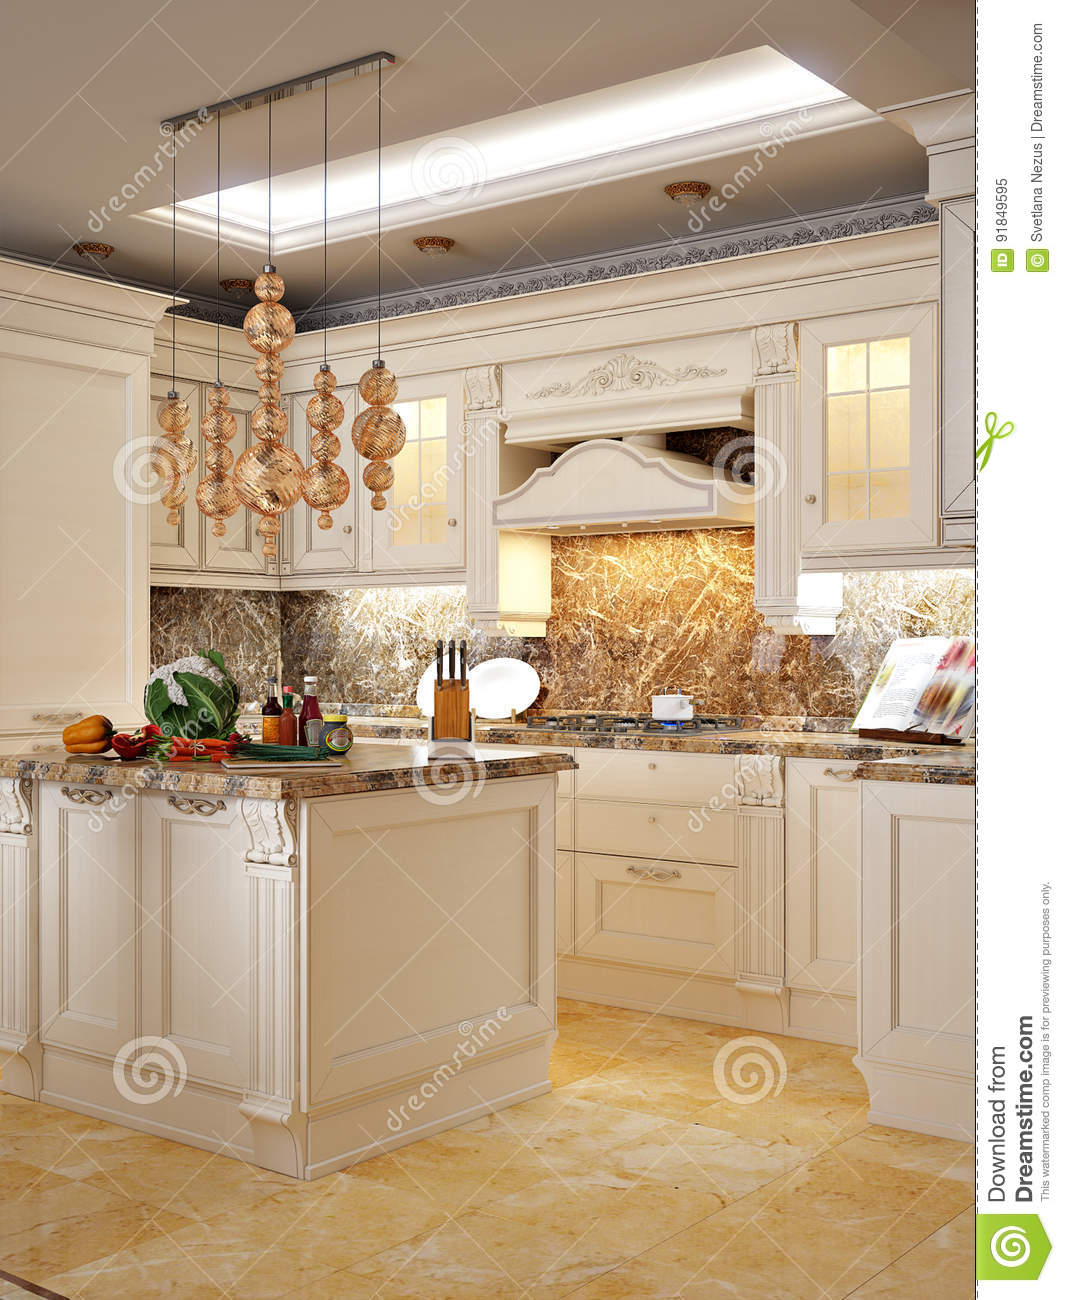 Kitchen Interior With Pink Furniture And Tiles Stock: Luxurious Classic Baroque Kitchen And Dining Room Stock